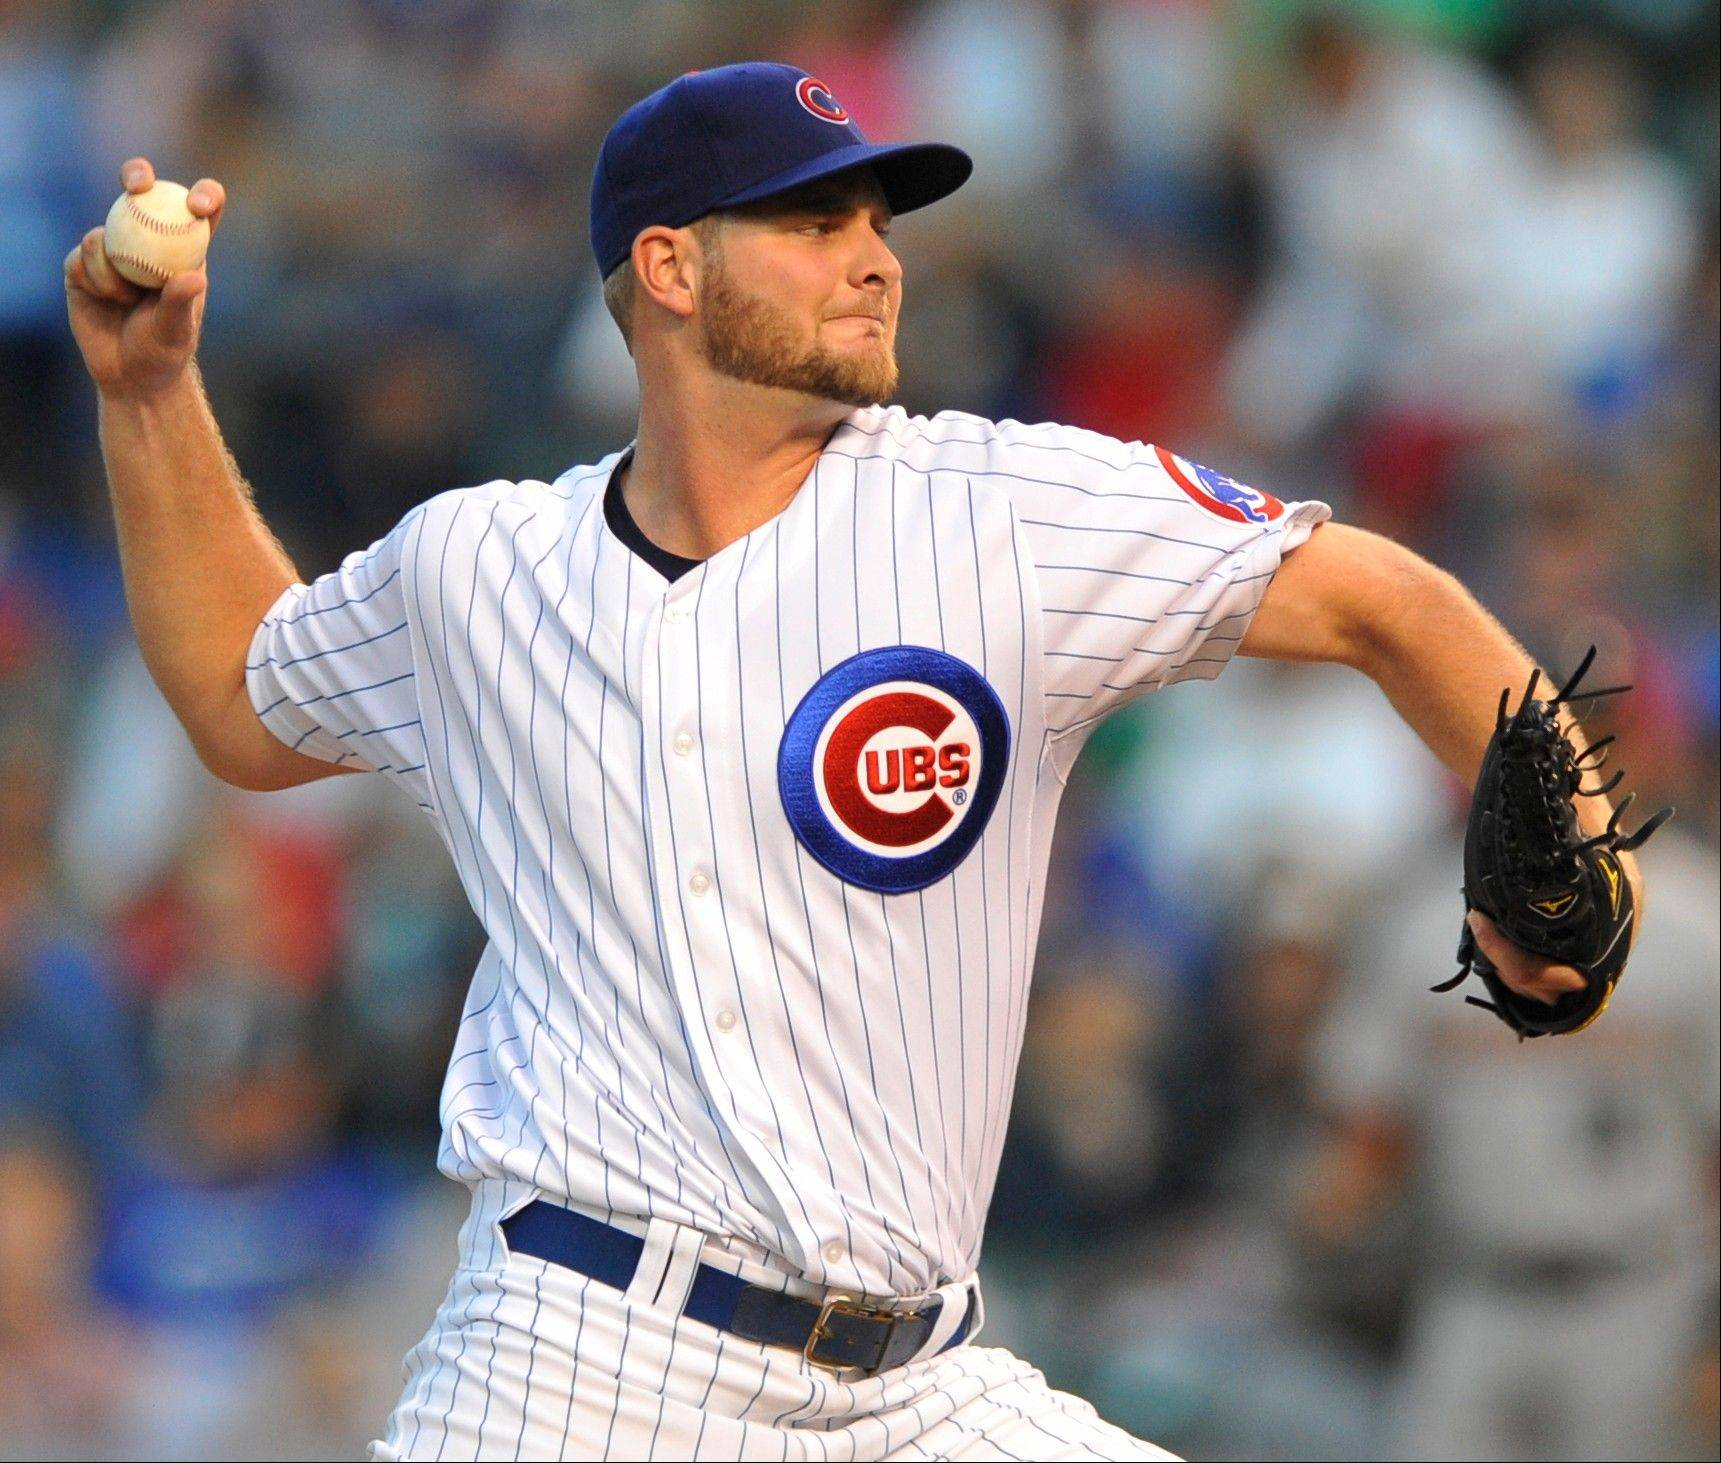 Cubs starter Chris Volstad dropped to 0-9 with Tuesday night�s 10-1 loss to the Houston Astros at Wrigley Field.